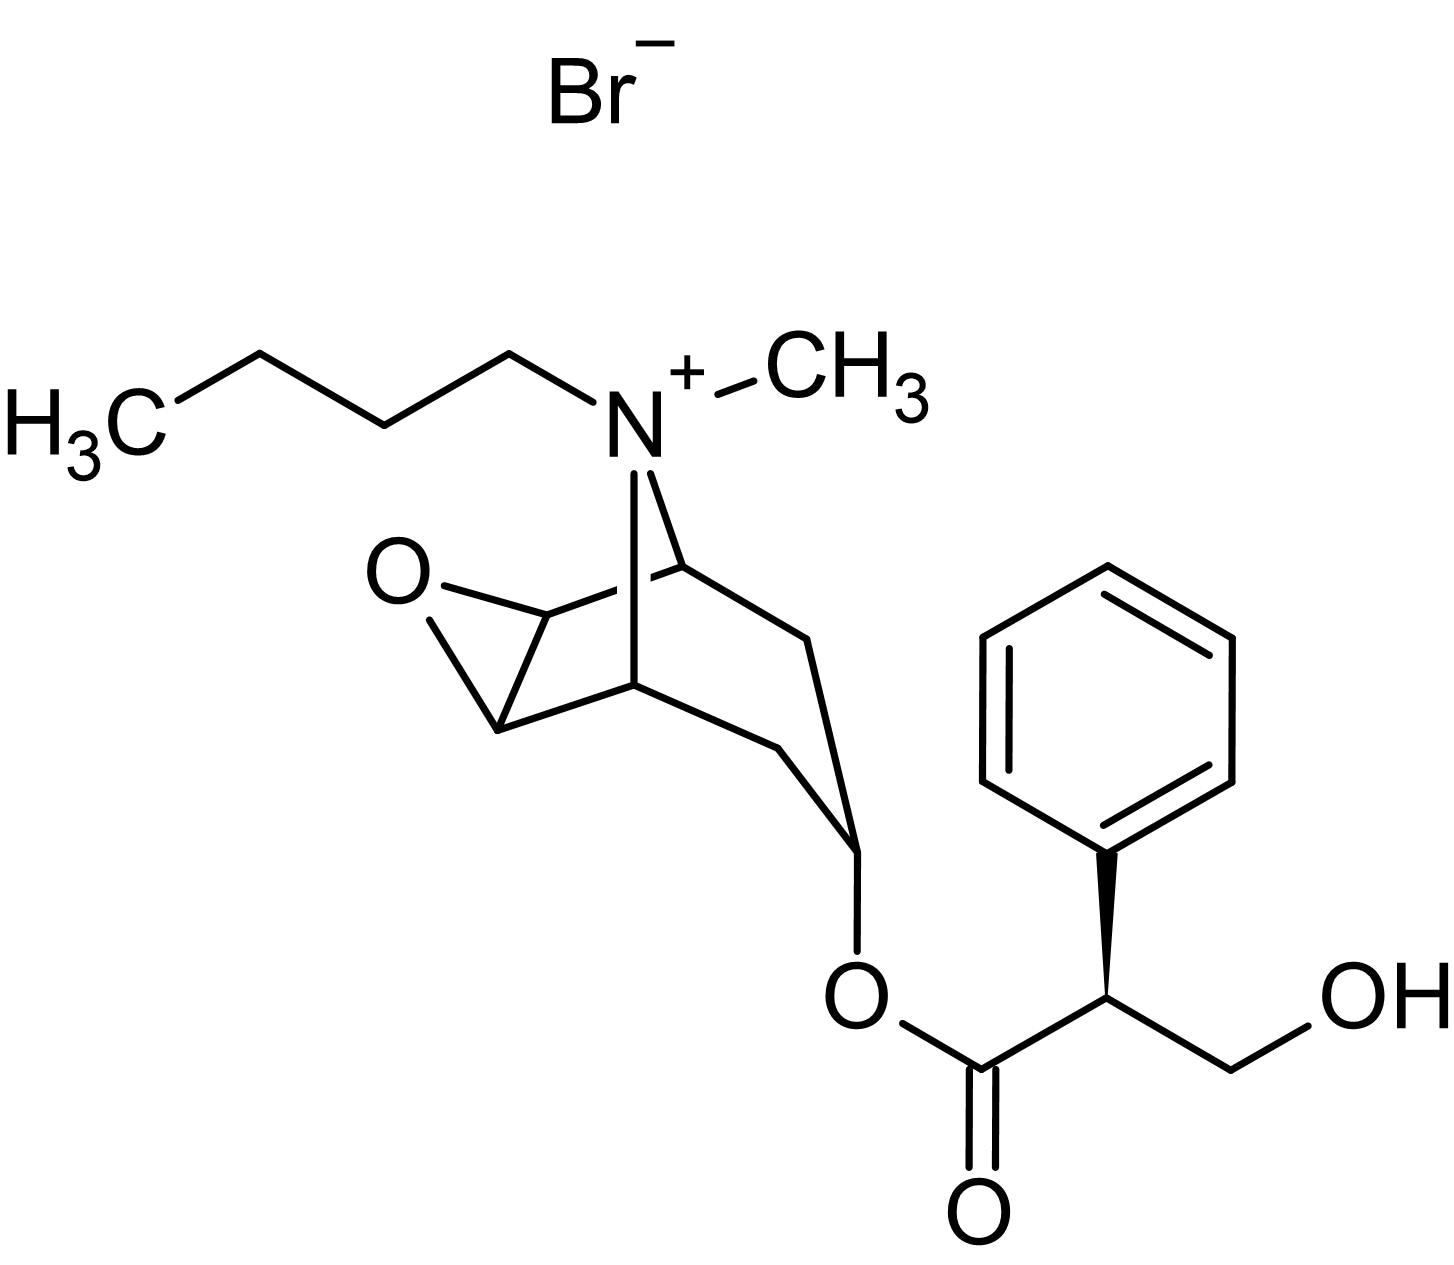 Chemical Structure - Scopolamine N-butylbromide, Anticholinergic agent (ab142541)